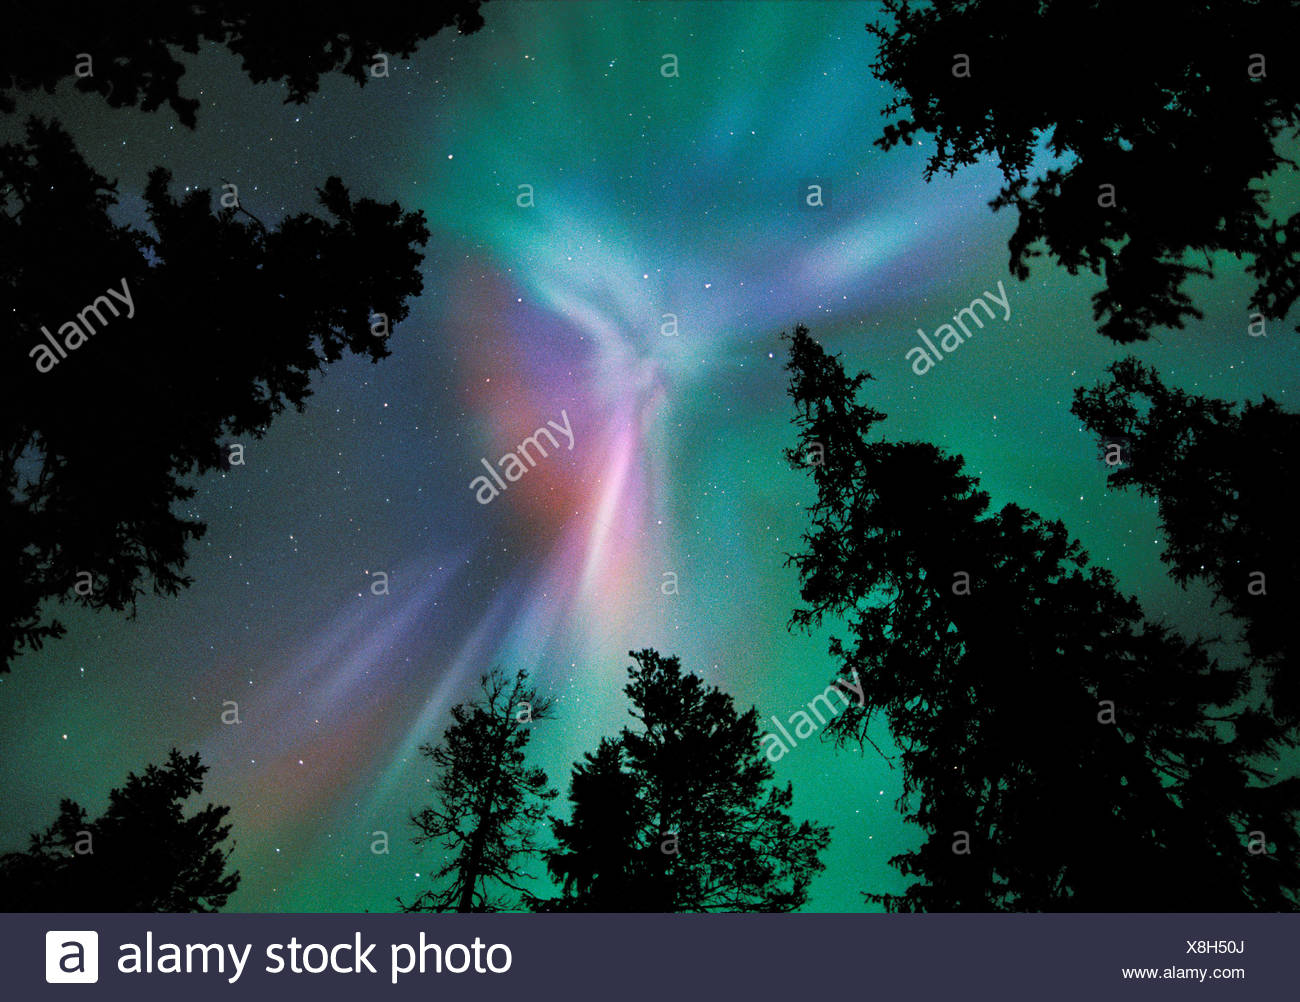 Aurora borealis colours in night sky showing corona, northern Finland, winter - Stock Image